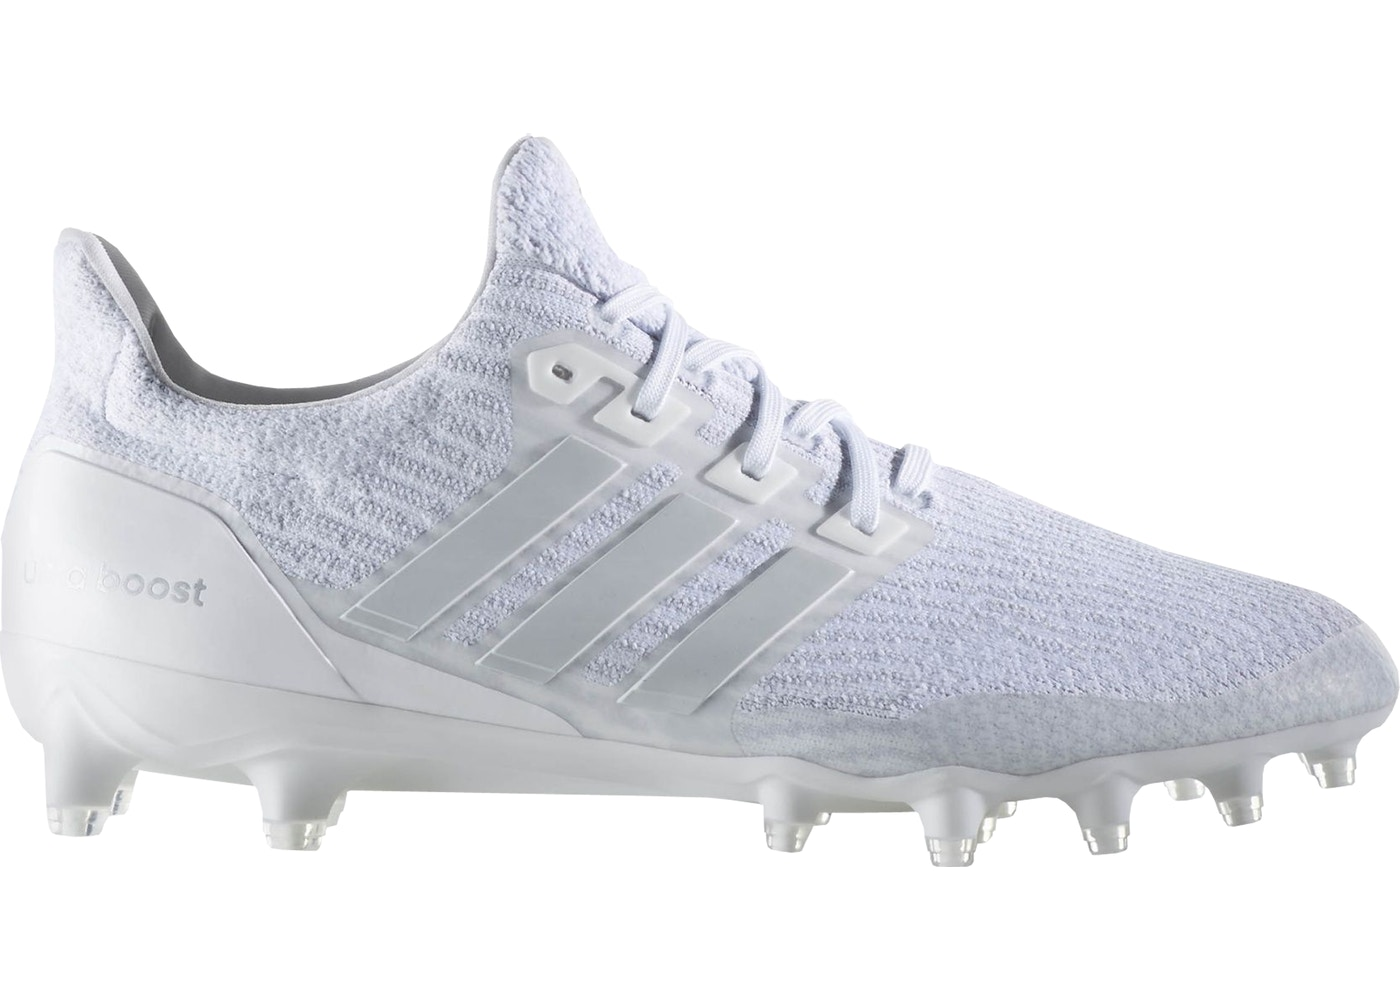 adidas Ultra Boost 3.0 Cleat Triple White - CG4814